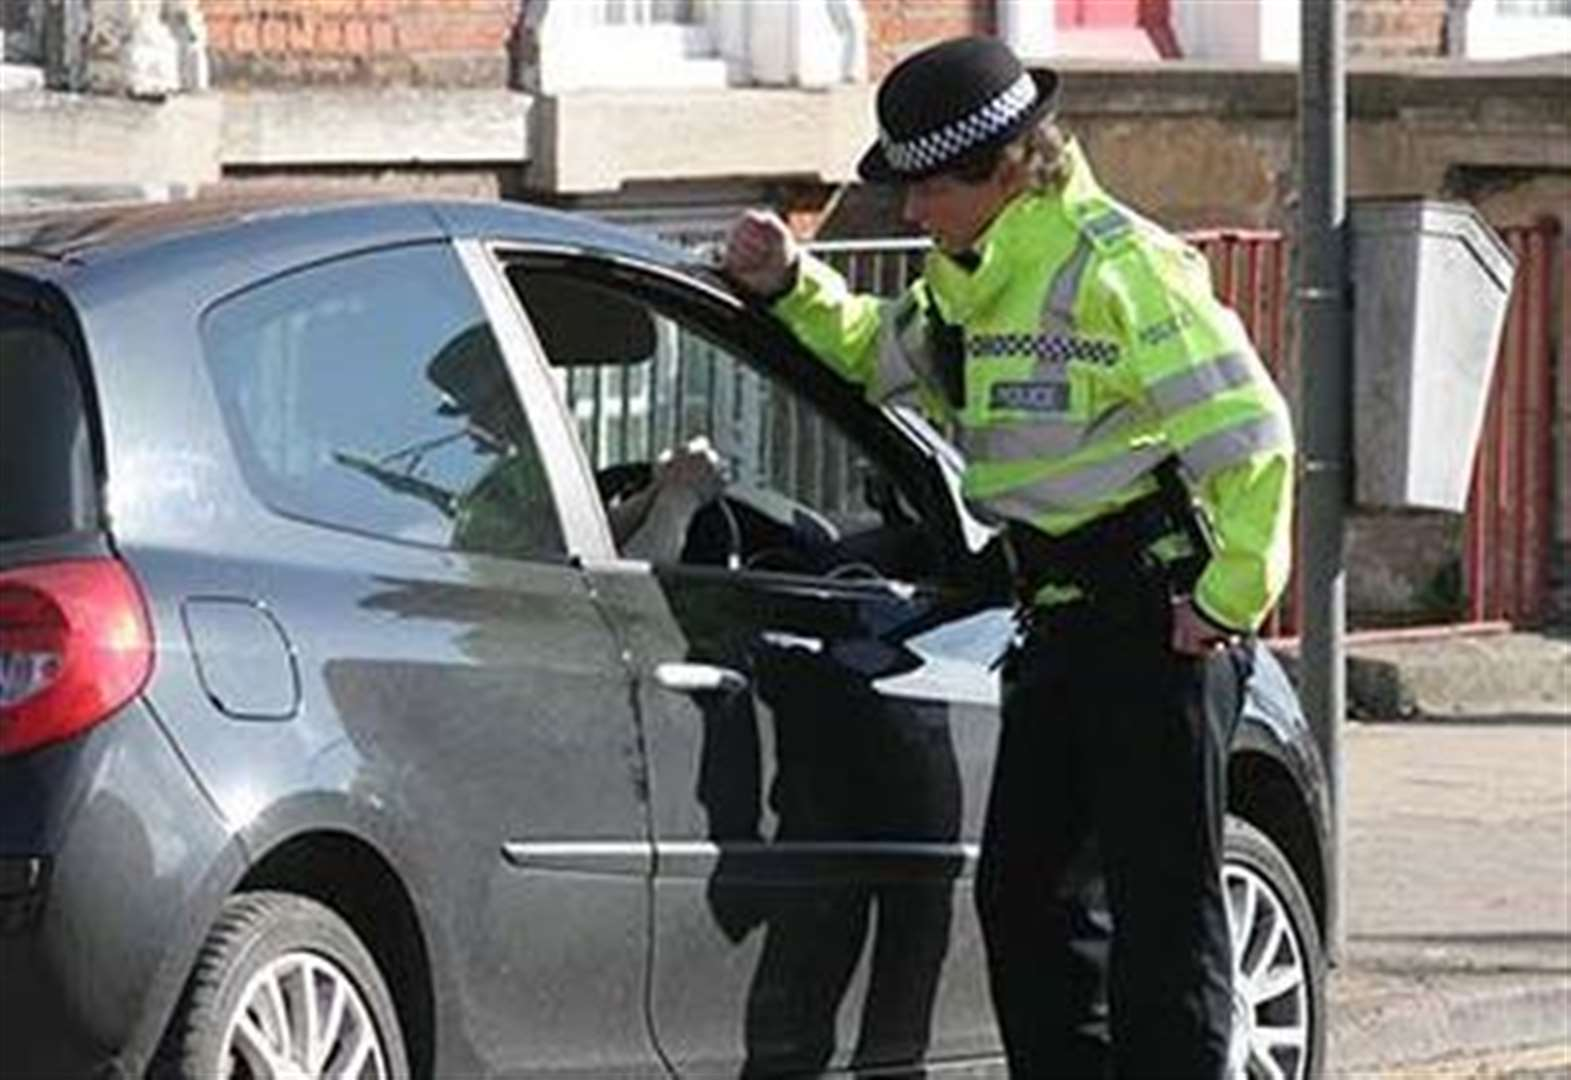 Police appeal for witnesses to car crime